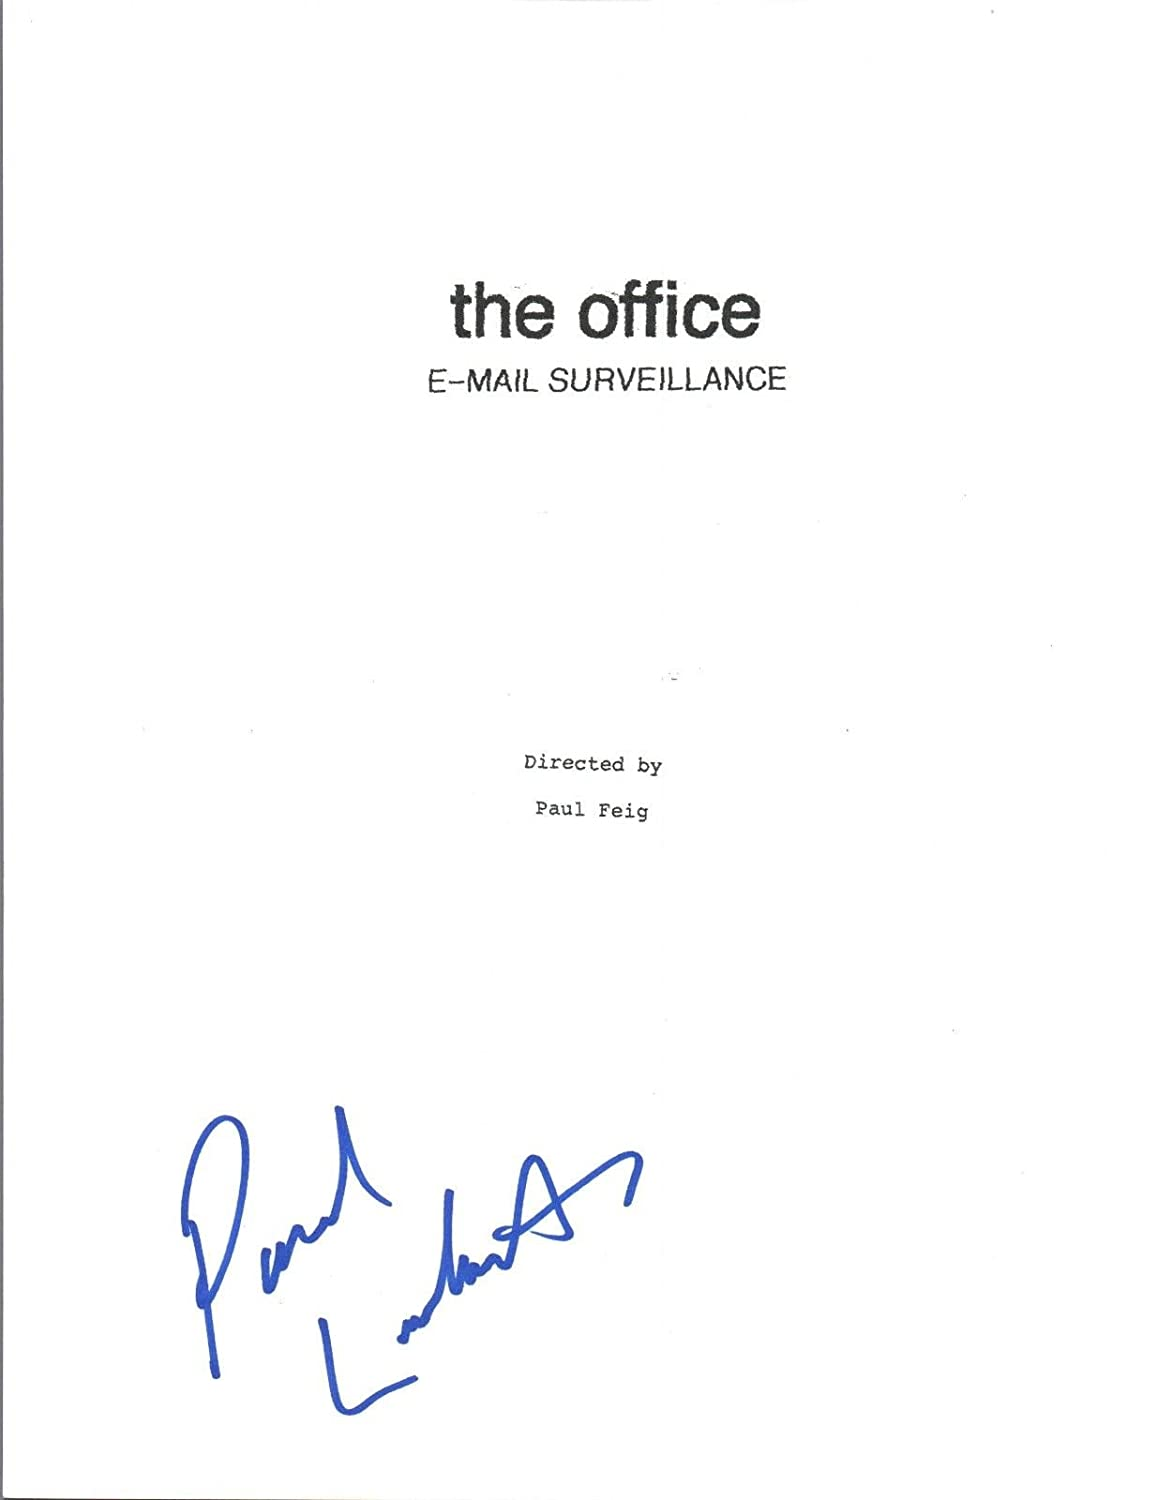 Paul Lieberstein Signed Autographed THE OFFICE Email Surveillance Script COA Unbranded